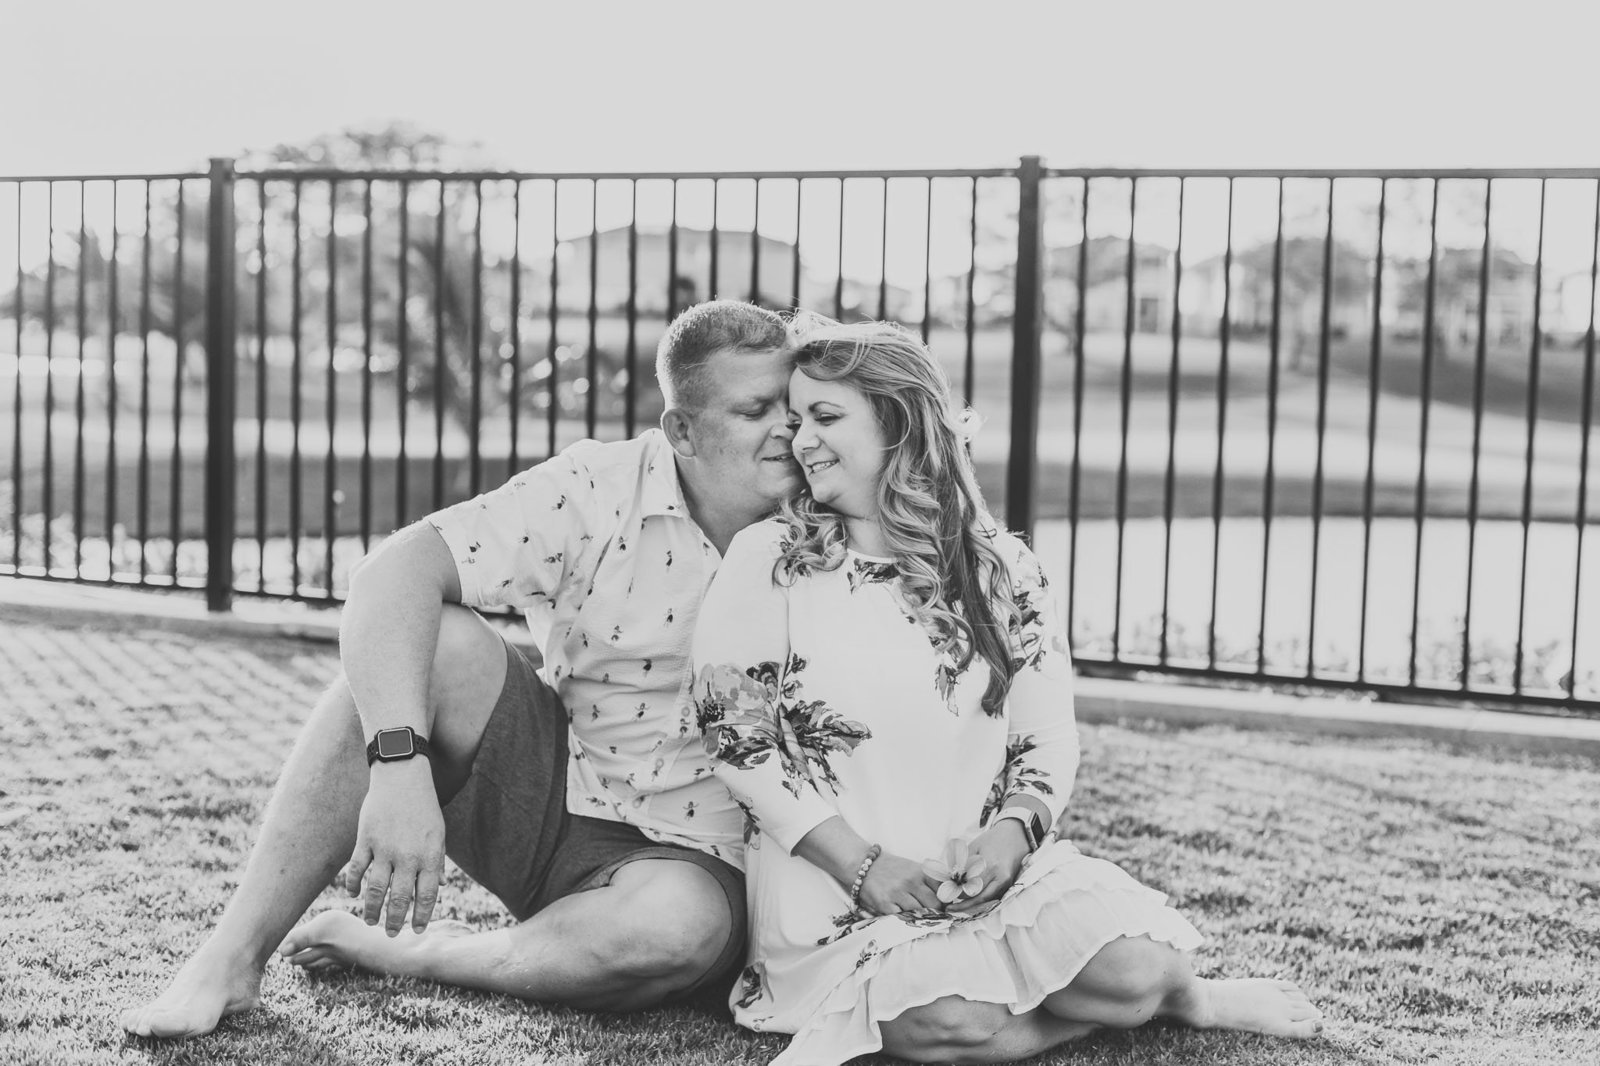 Oahu, Hawaii Lifestyle Photographer - Lifestyle Photography - Brooke Flanagan Photography - Couple in black and white